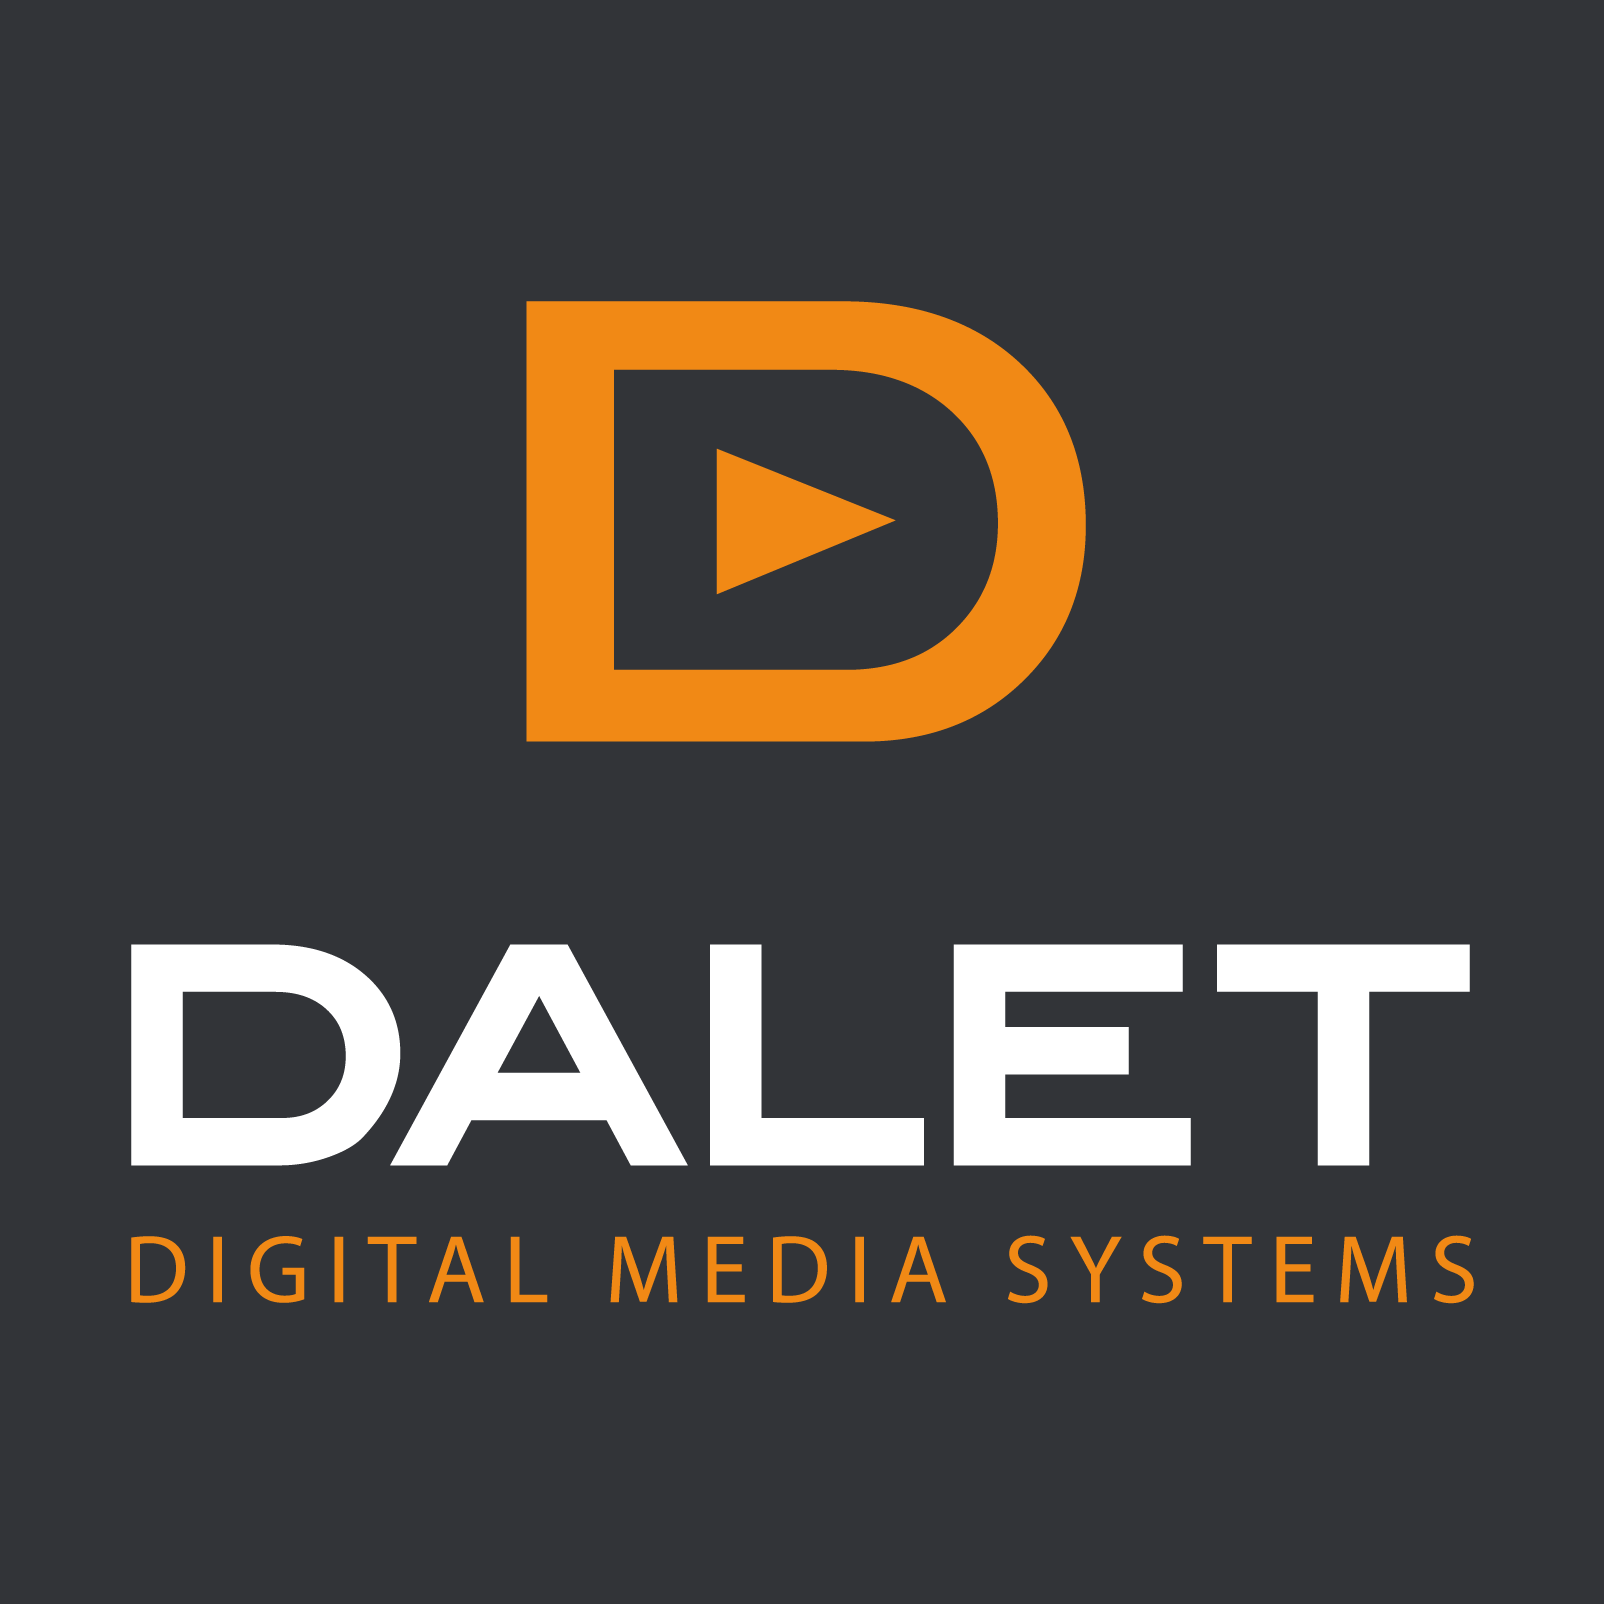 Dalet Digital Media Systems